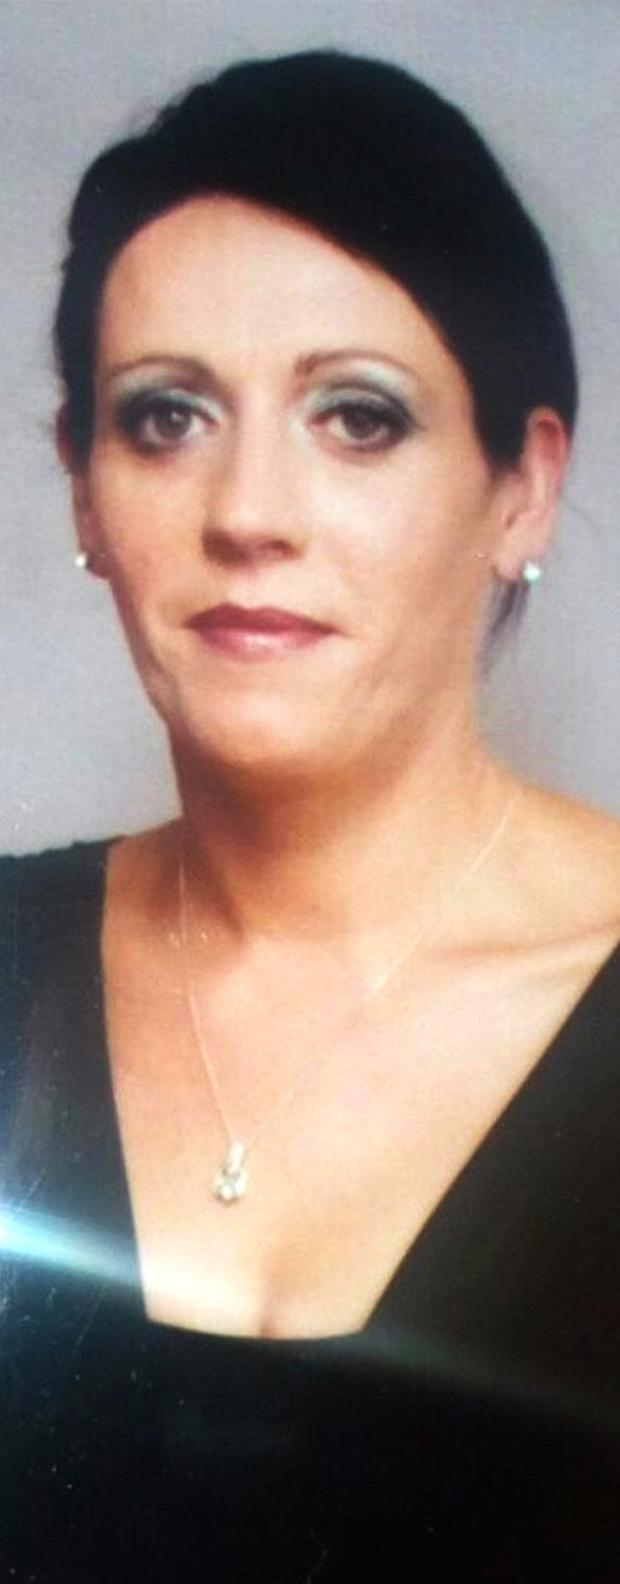 Eithne Butterly, the widow of murdered dissident republican Peter Butterly